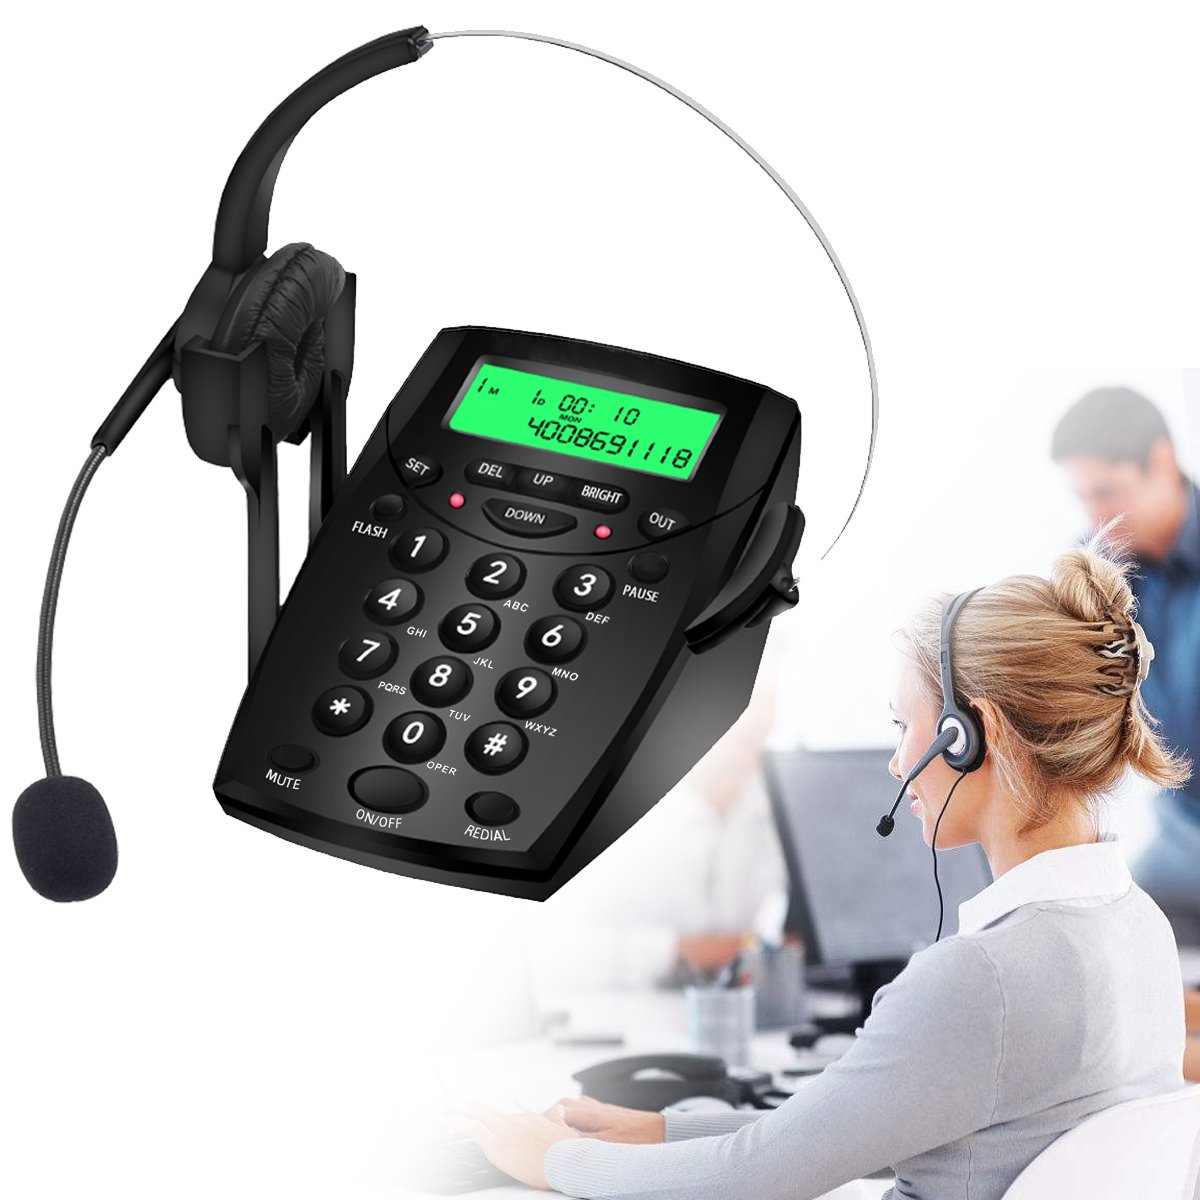 Wikoo Noise cancellation Headset Telephone with 30 incoming,5 outgoing number memories for Call Center Business,Insurance,Hospitals,Black